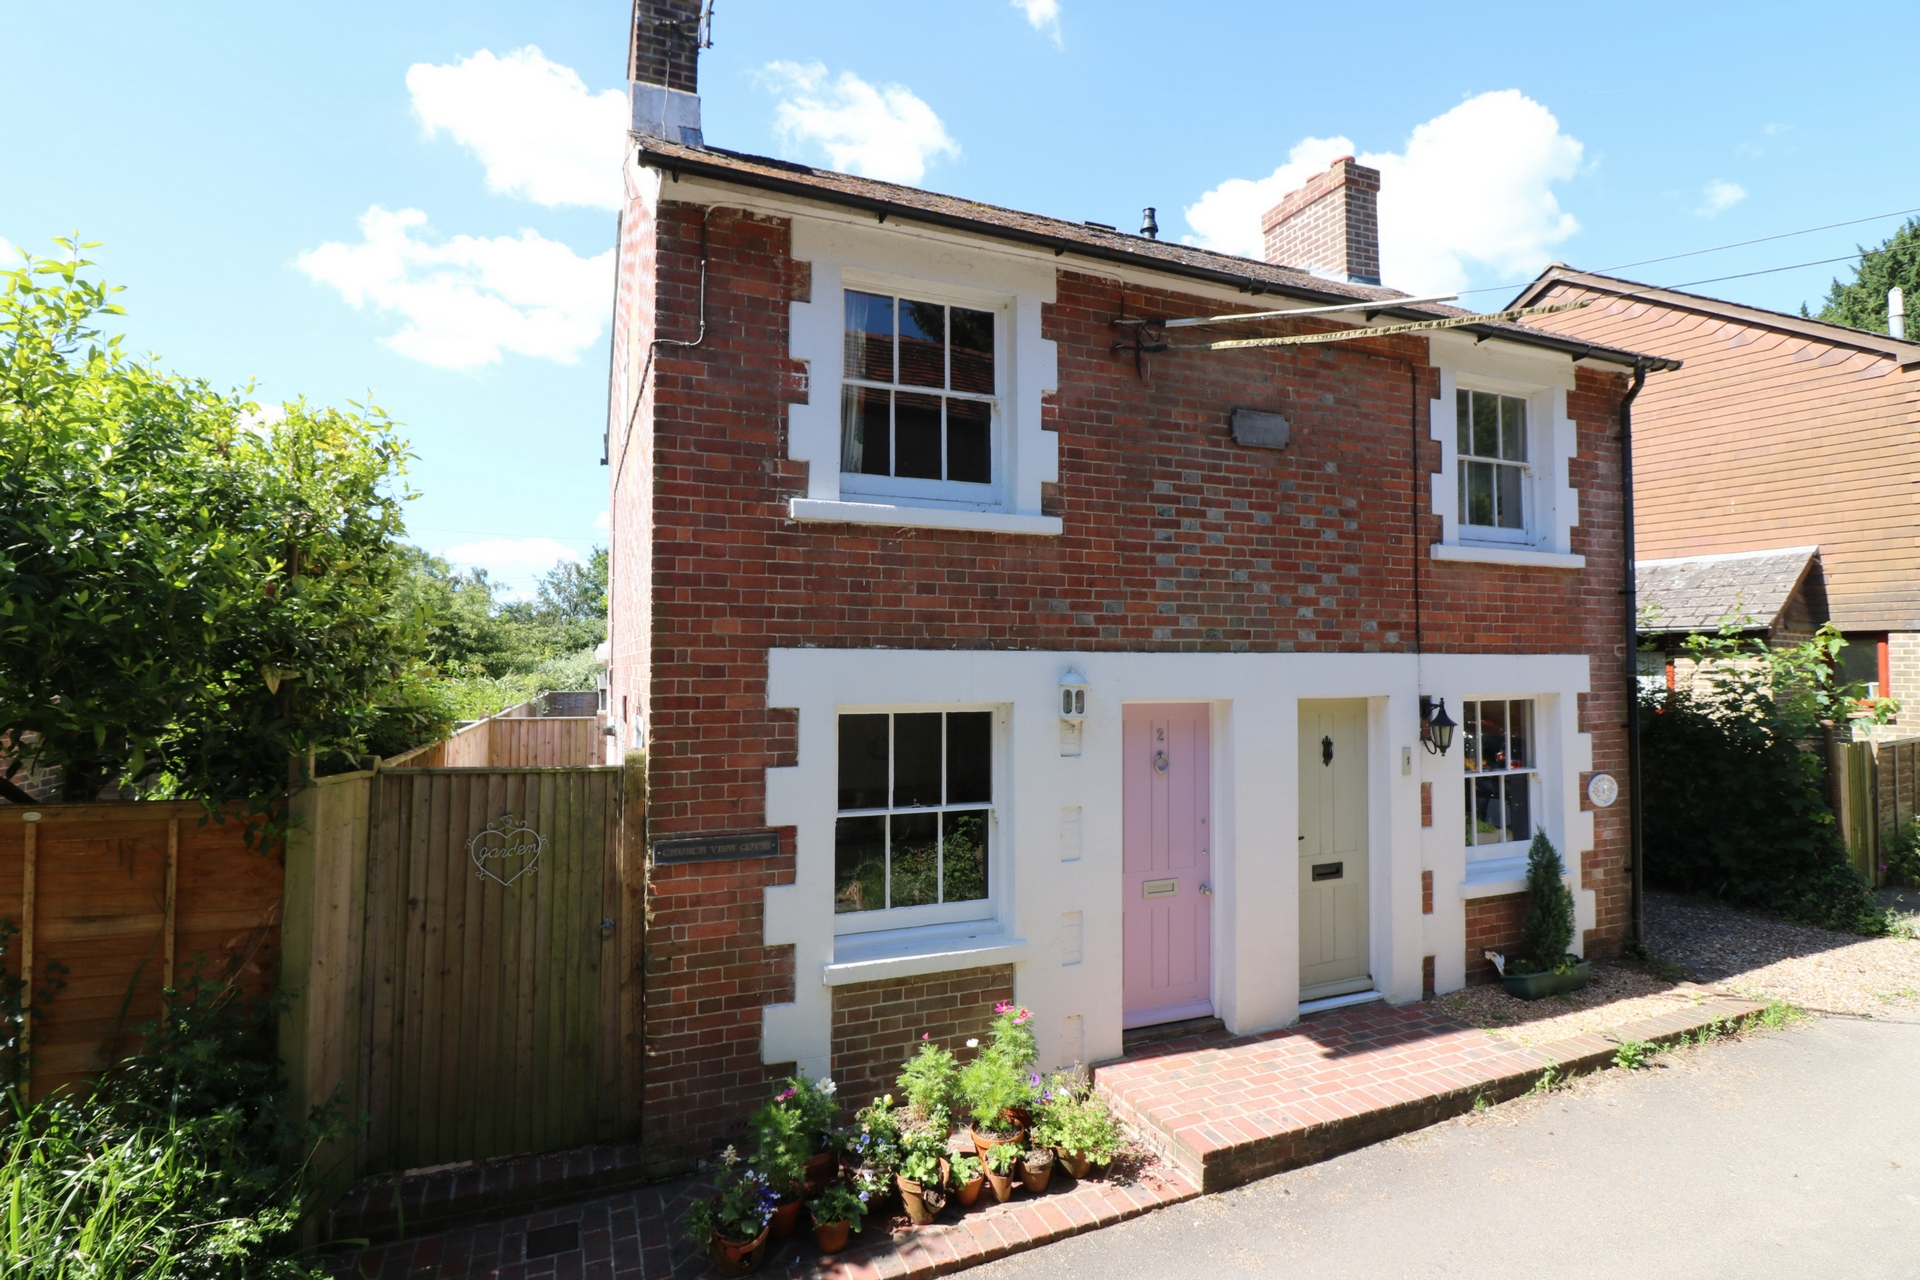 Photo 8, Francis Road, Lindfield, RH16